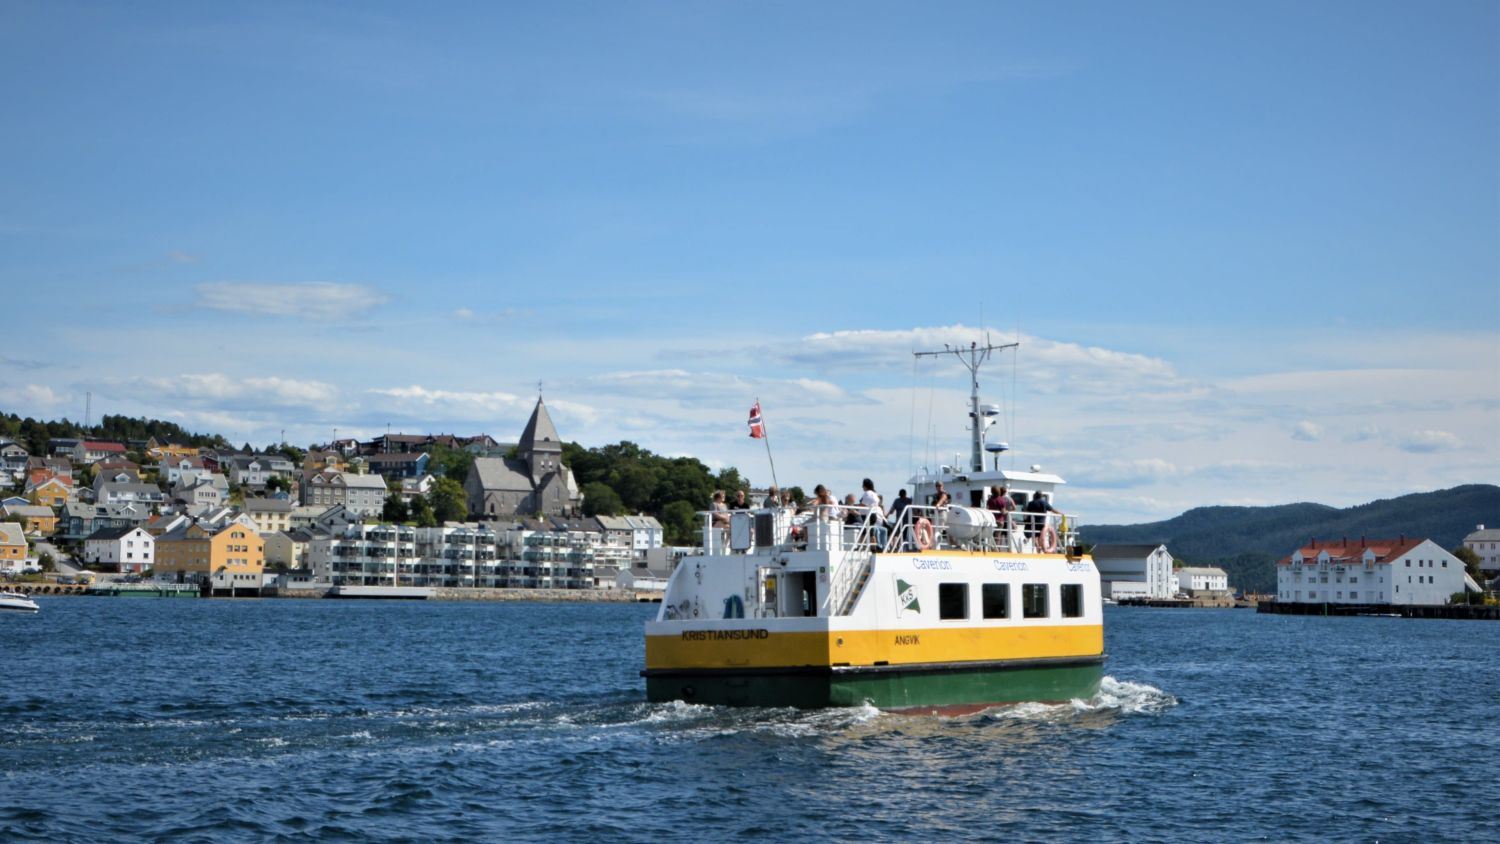 The tiny and traditional passenger boat in Kristiansund